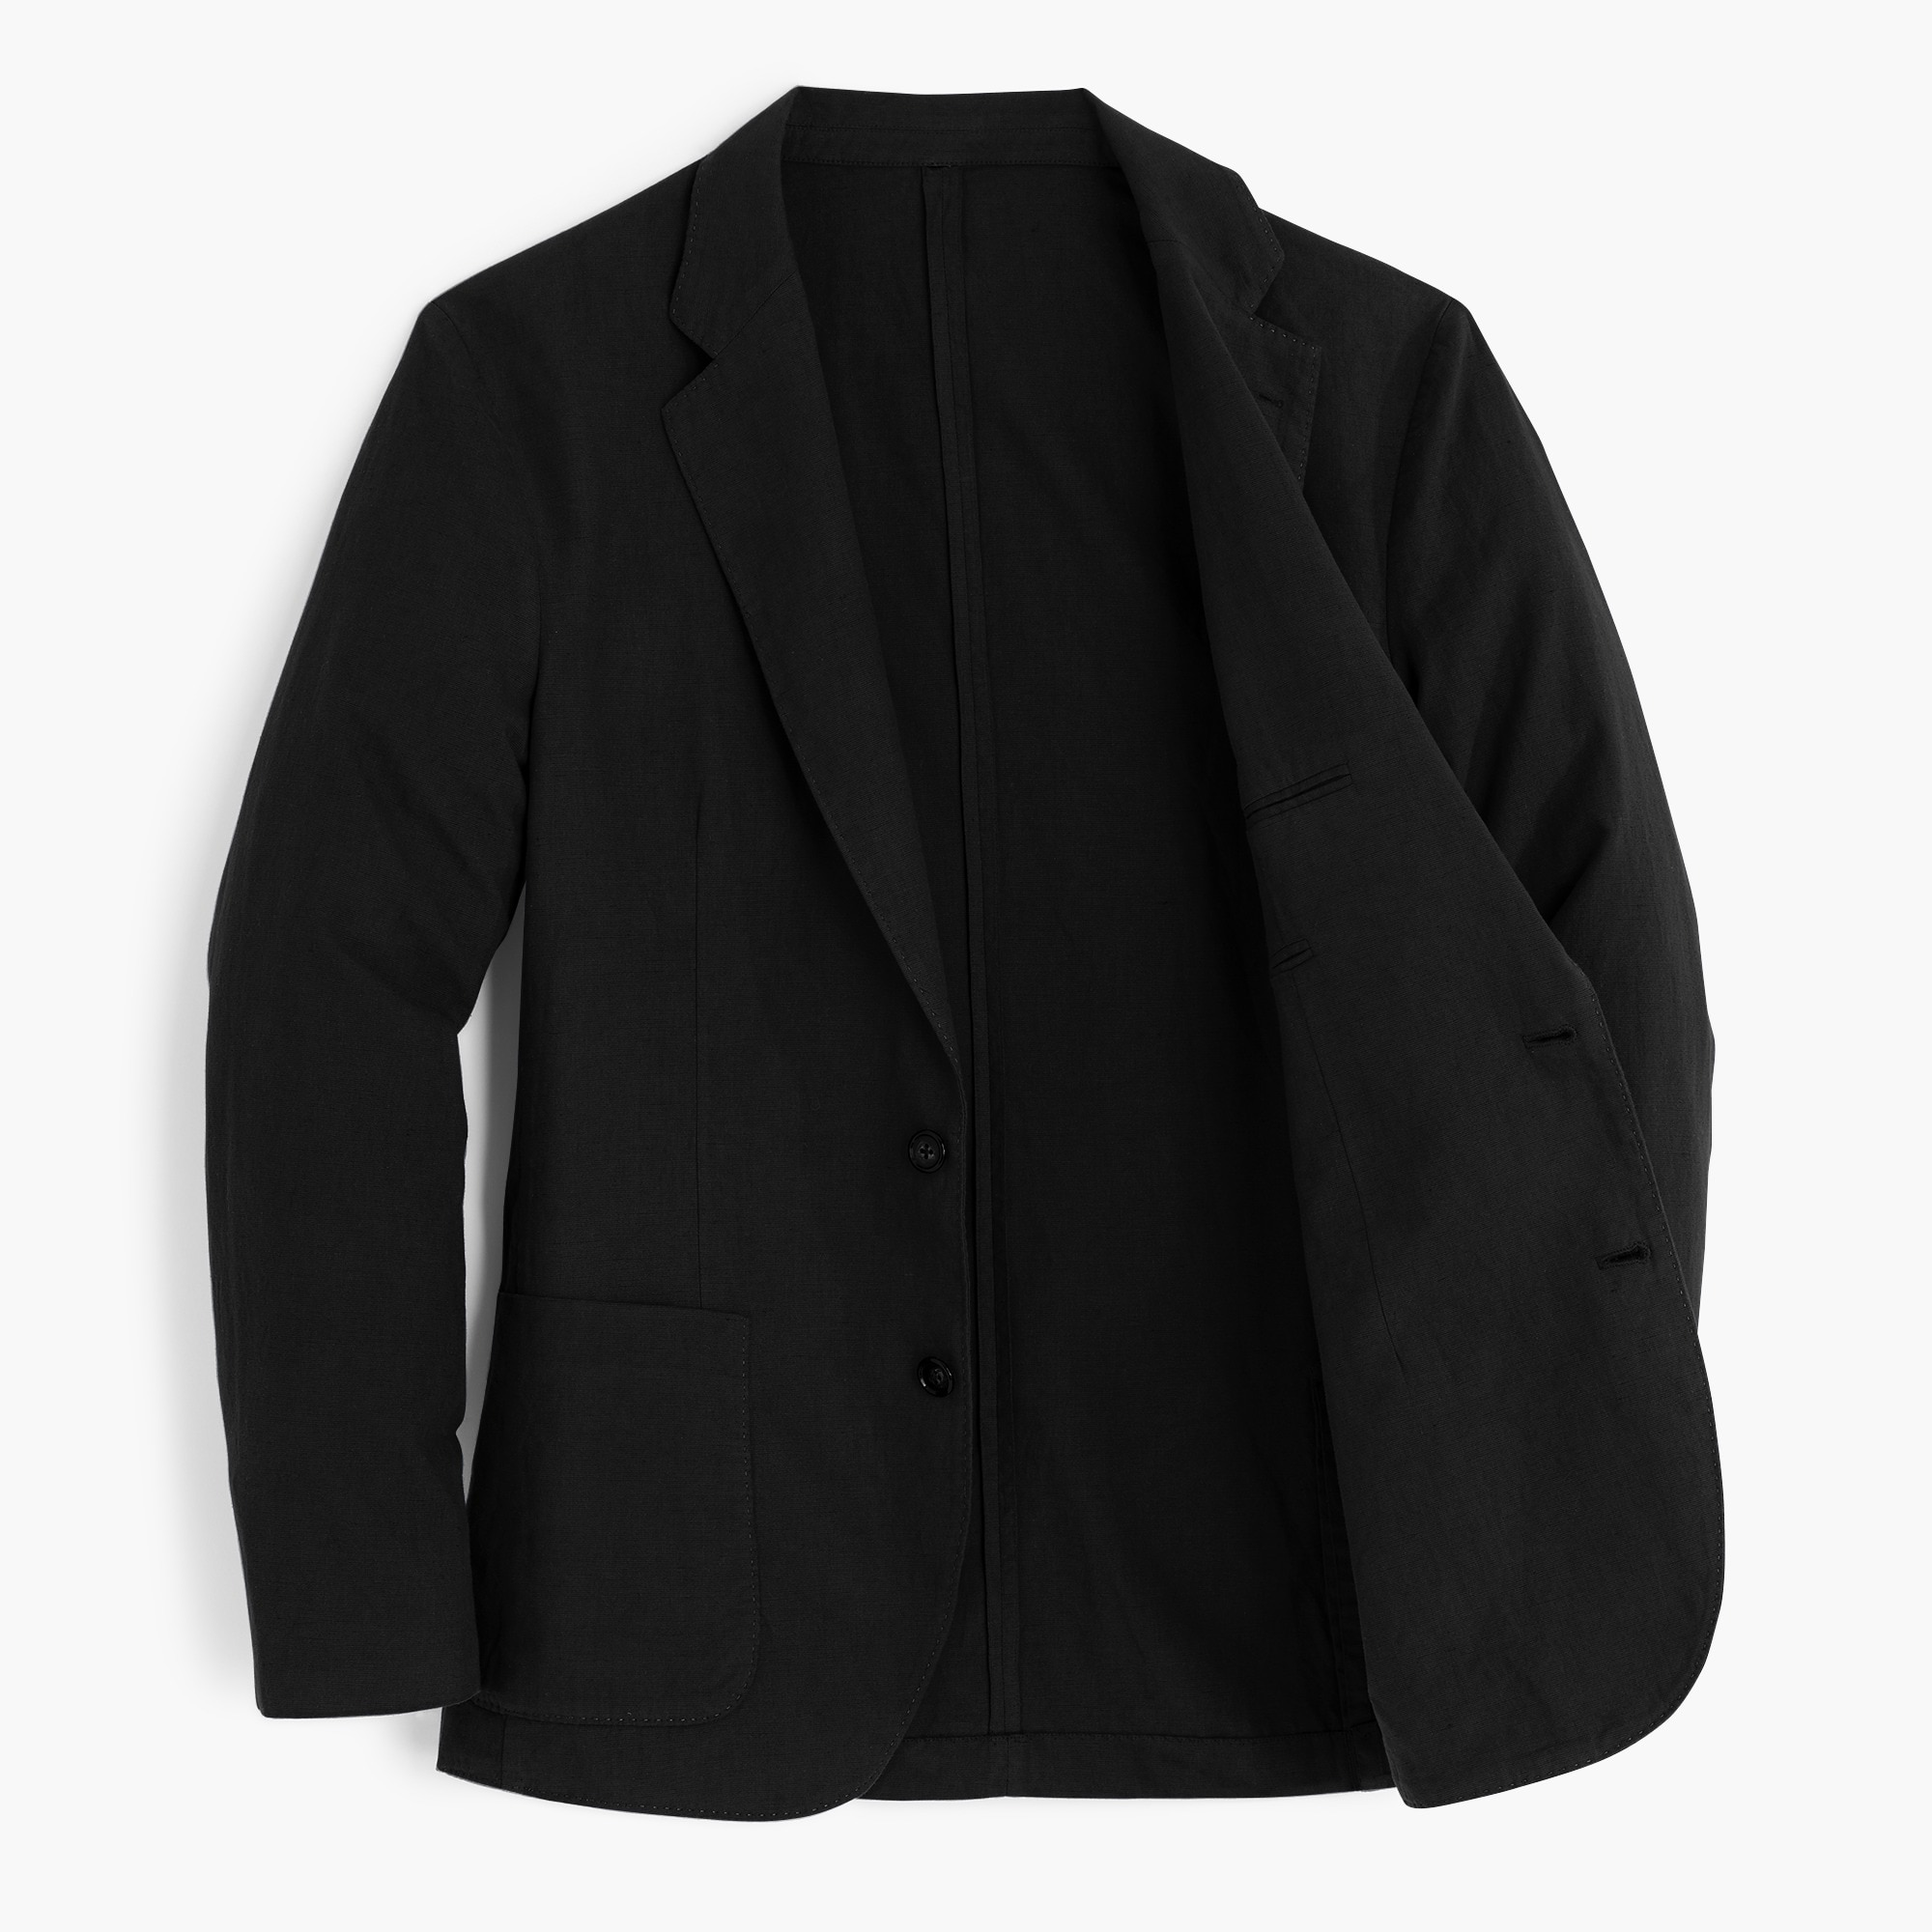 Image 2 for Unstructured Slim-fit Ludlow blazer in garment-dyed cotton-linen